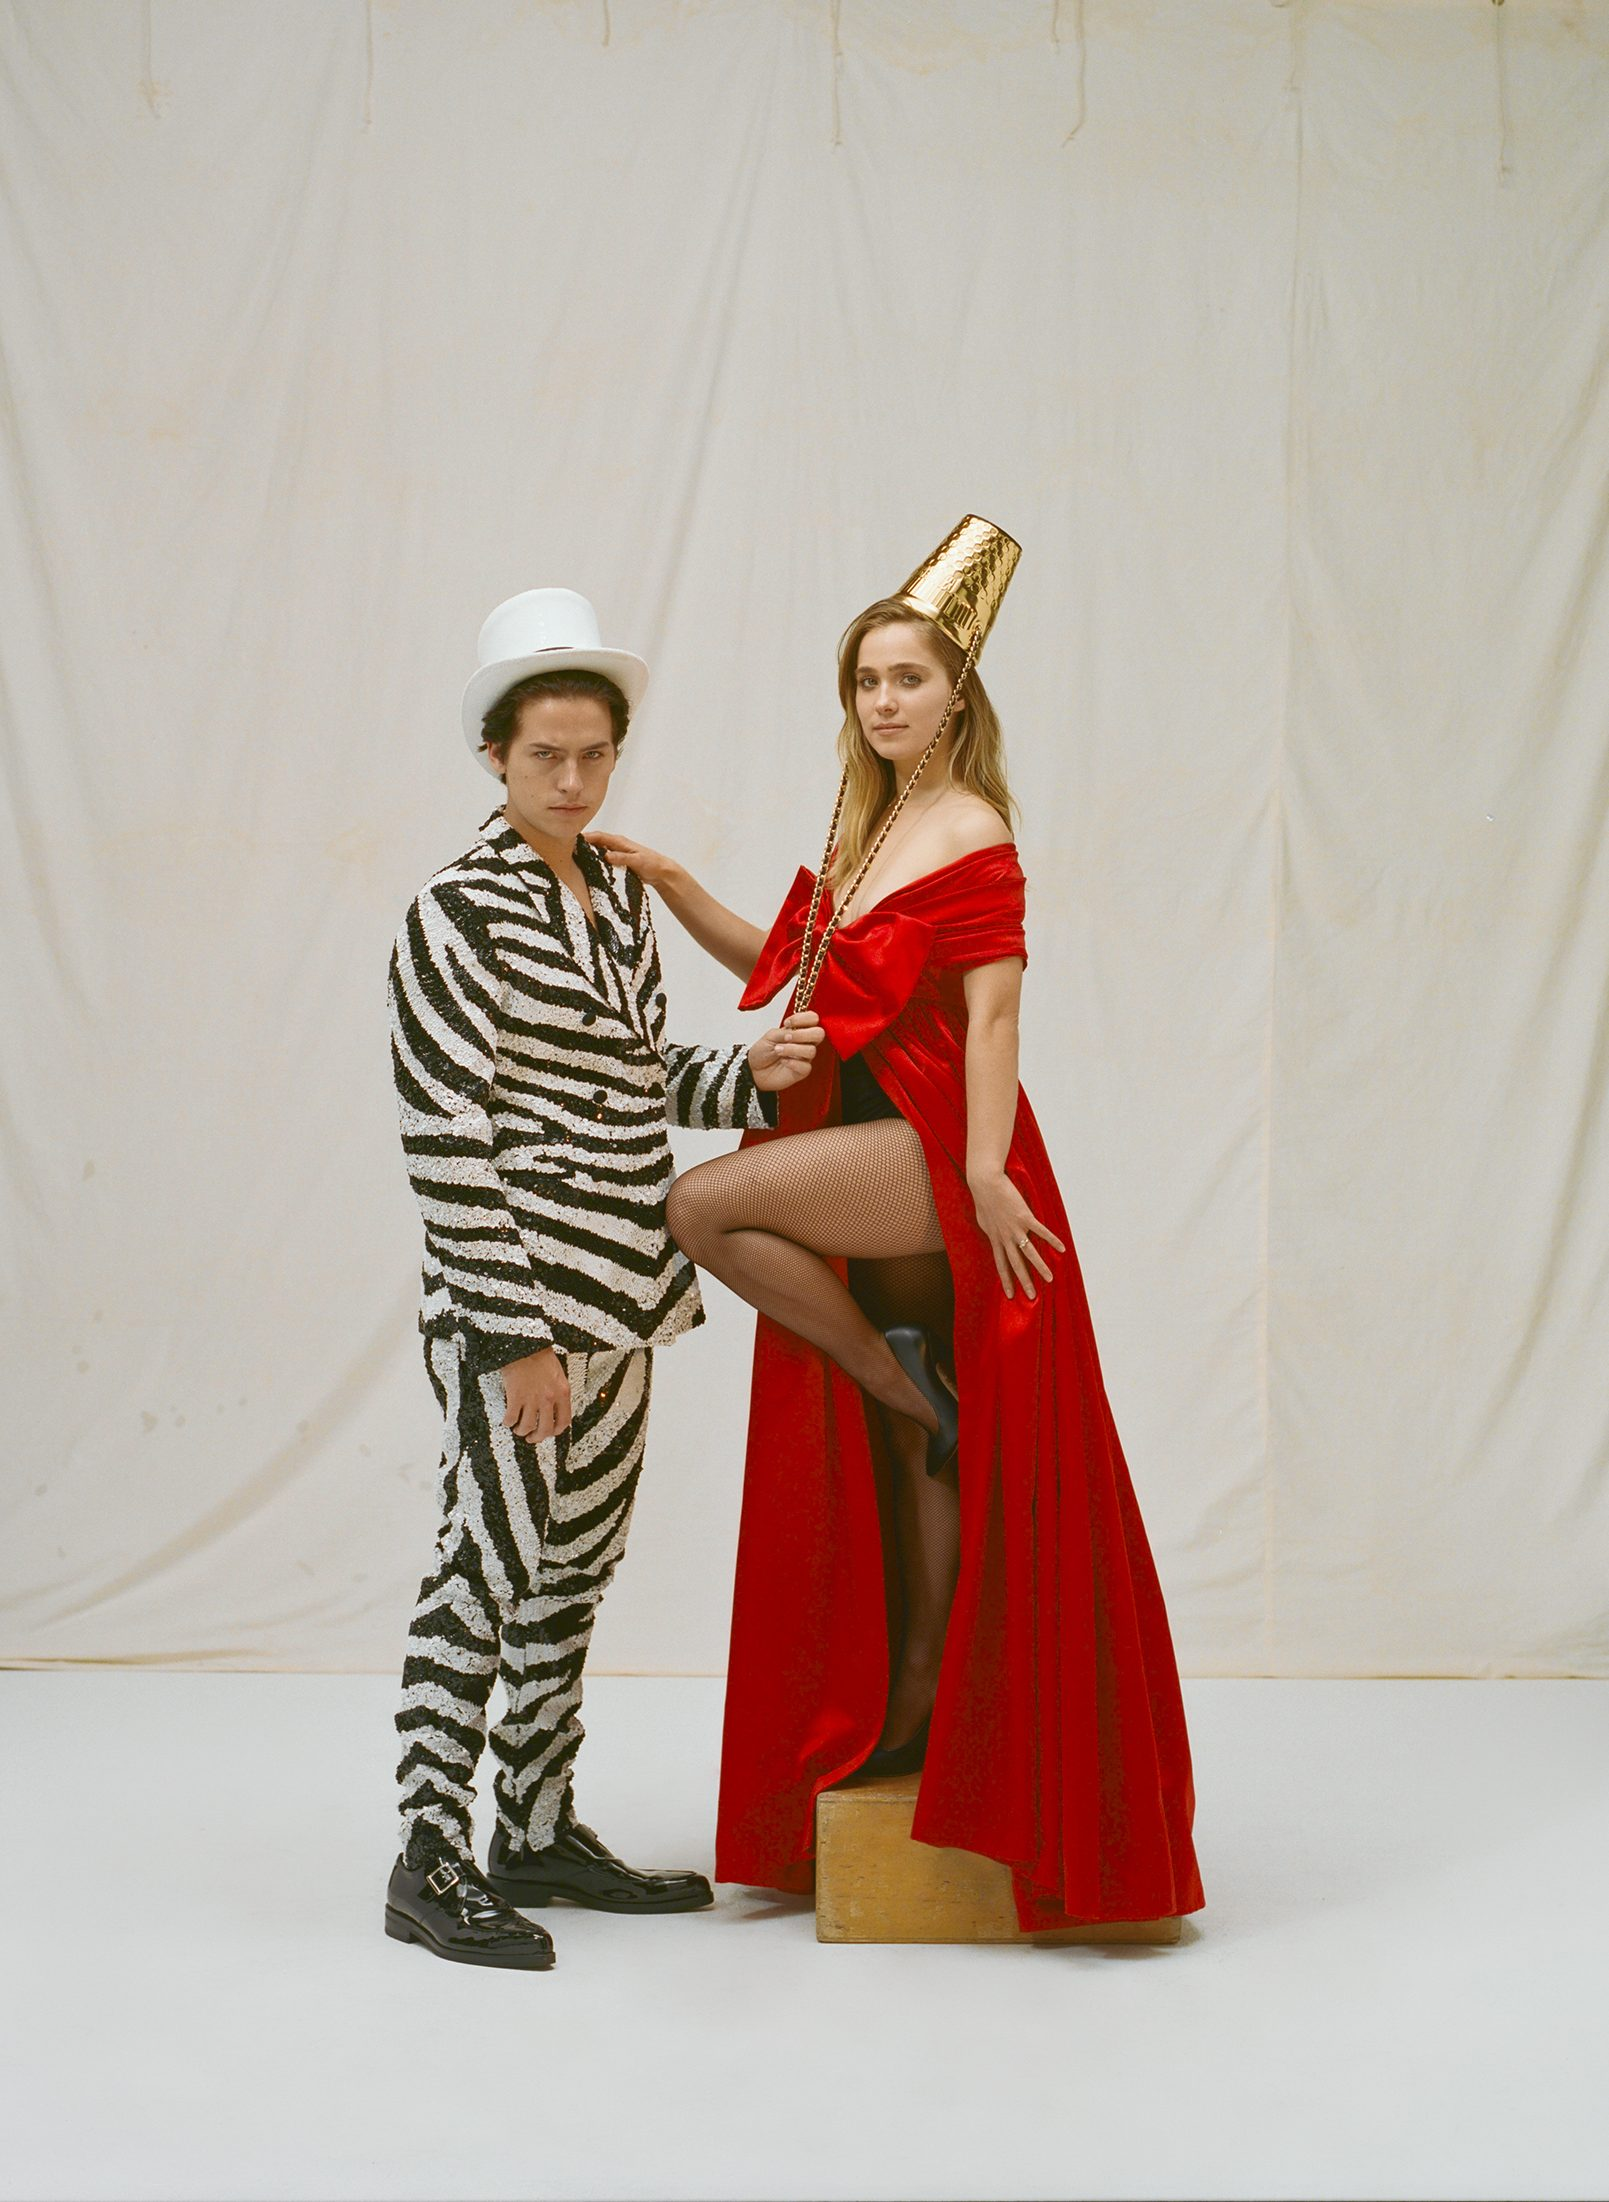 Cole Sprouse and Haley Lu Richardson on the Spring 19 cover of Wonderland in zebra suit